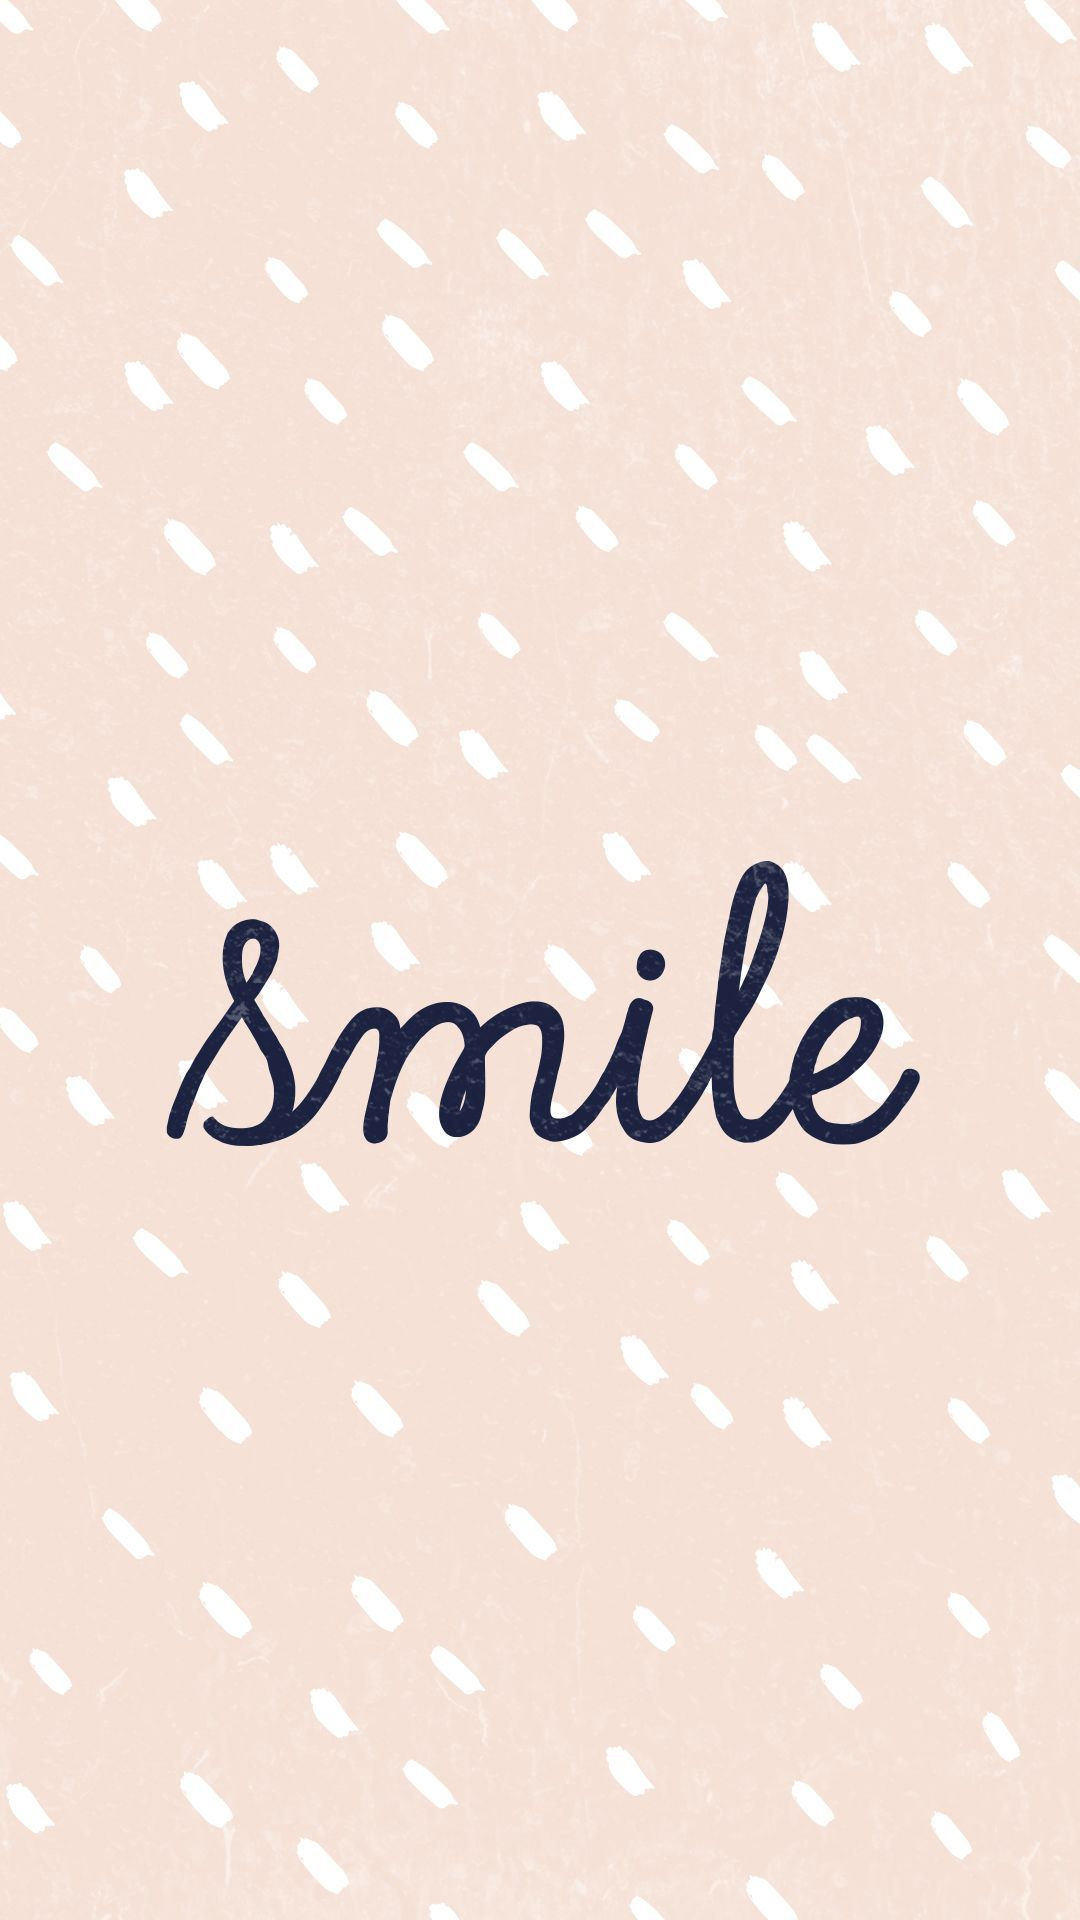 Sonrie Ms Smile Wallpaper, Wallpaper For Your Phone, Lock Screen Wallpaper, Computer